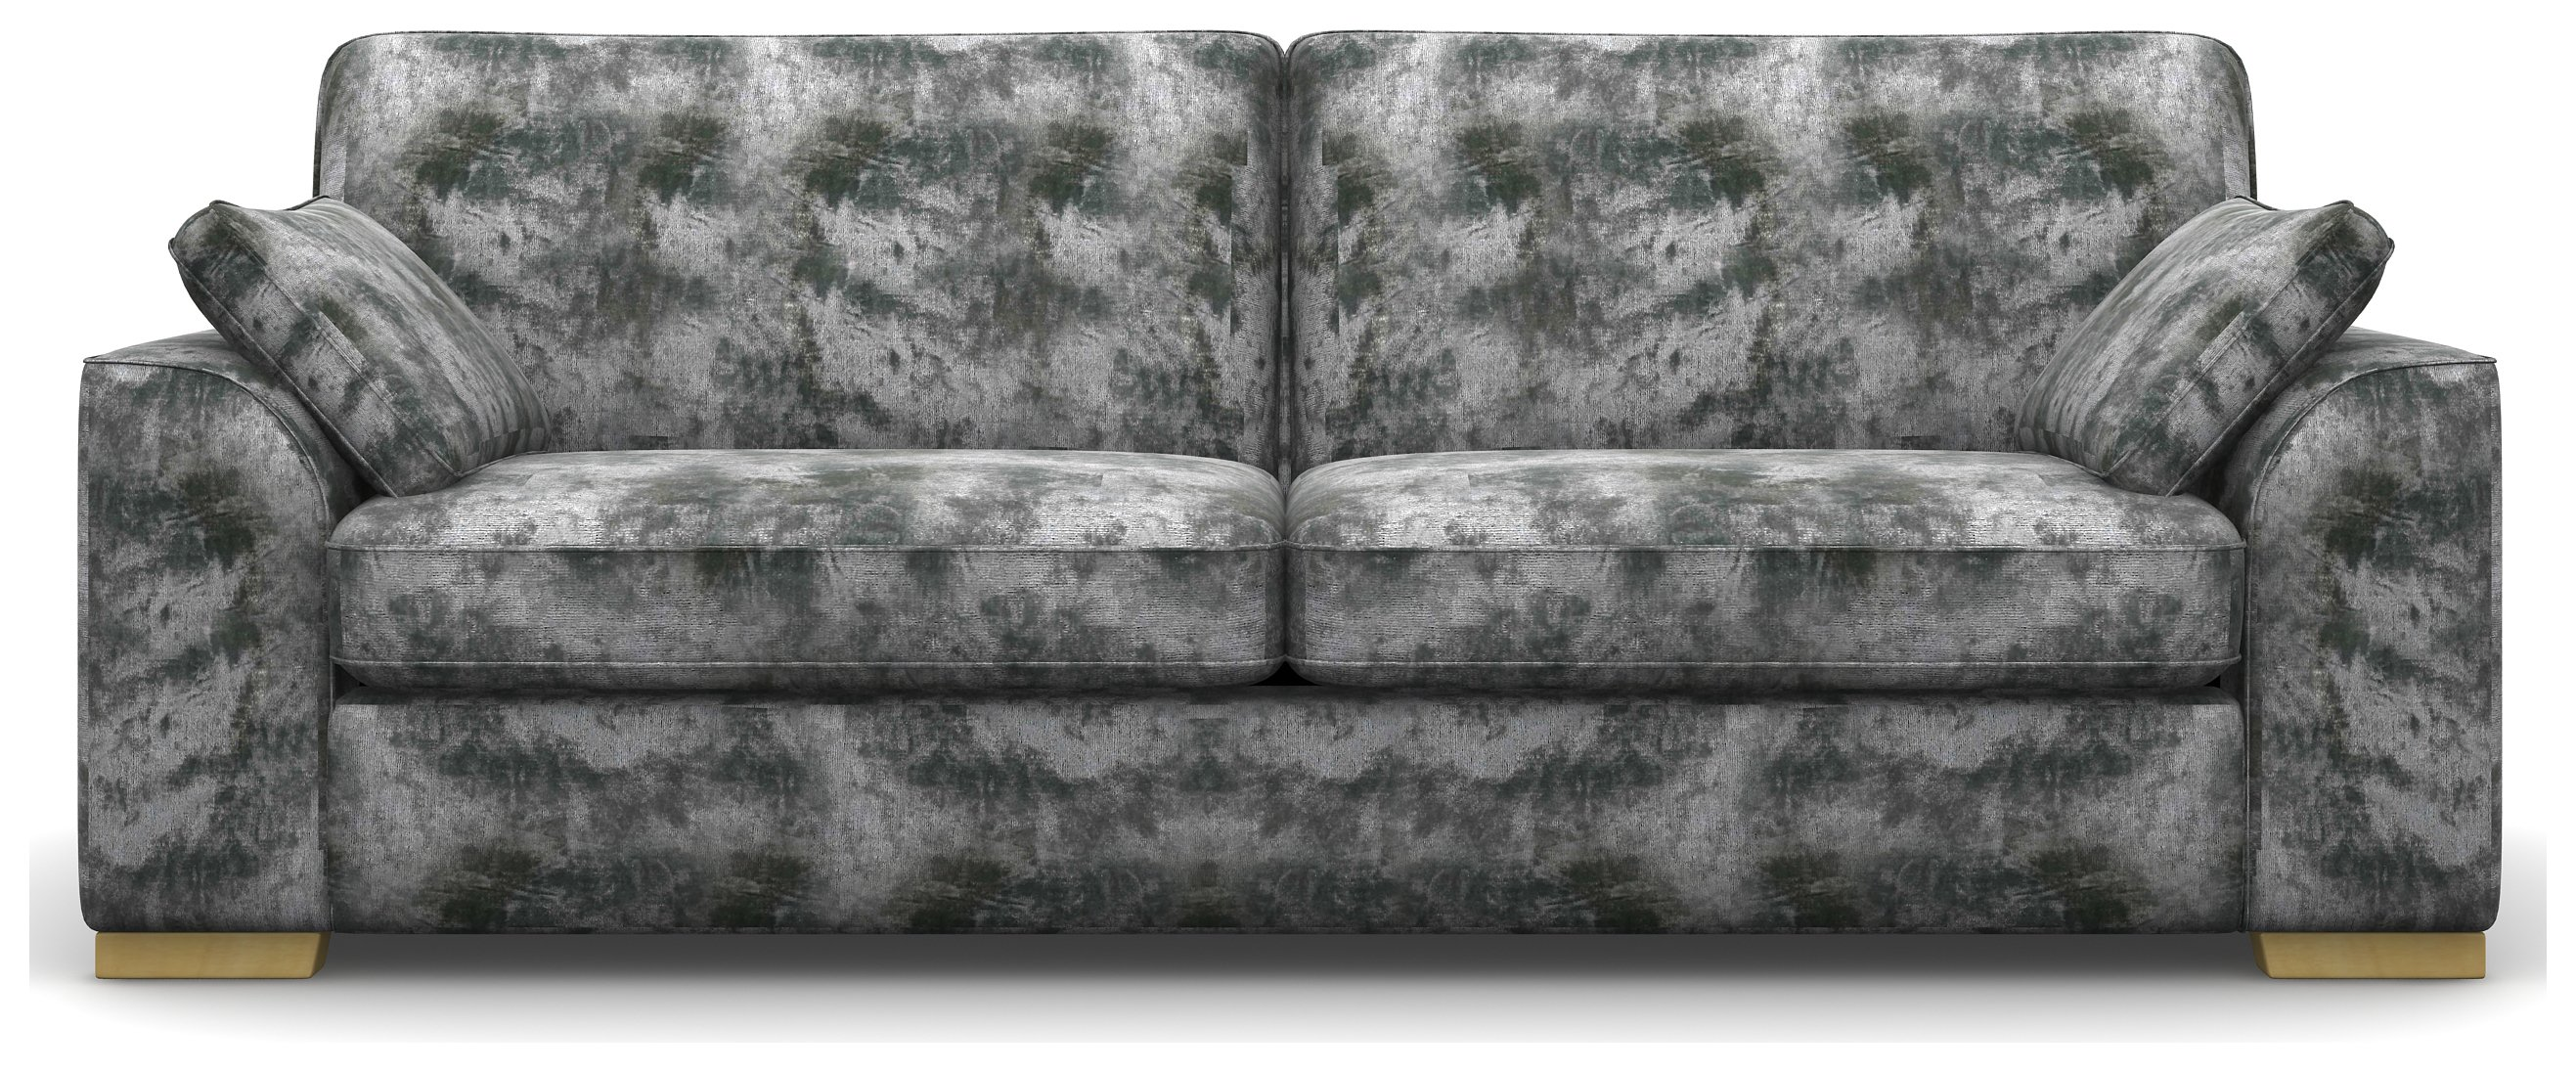 Heart of House Lincoln 4 Seat Shimmer Fabric Sofa - Silver